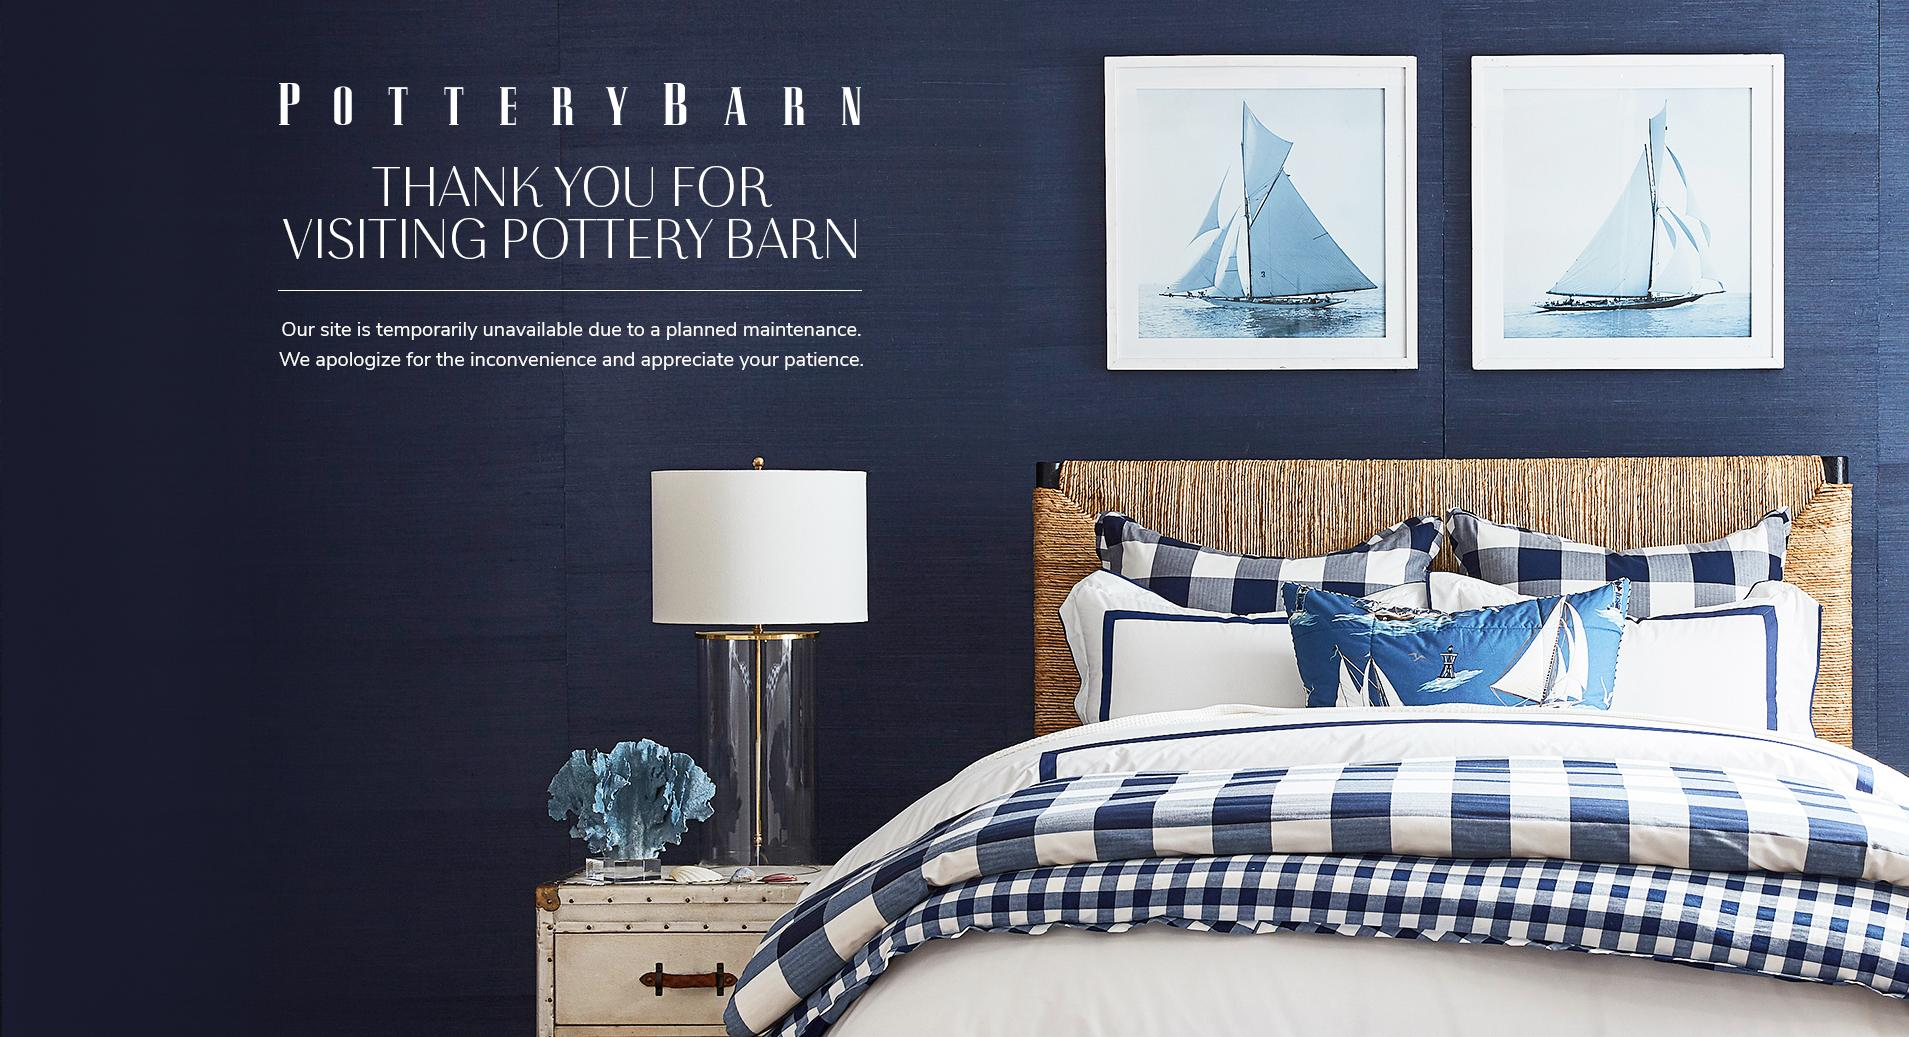 Thank you for visiting Pottery Barn, our site is temporarily unavailable due to a planned maintenance. We apologize for the inconvenience and appreciate your patience.